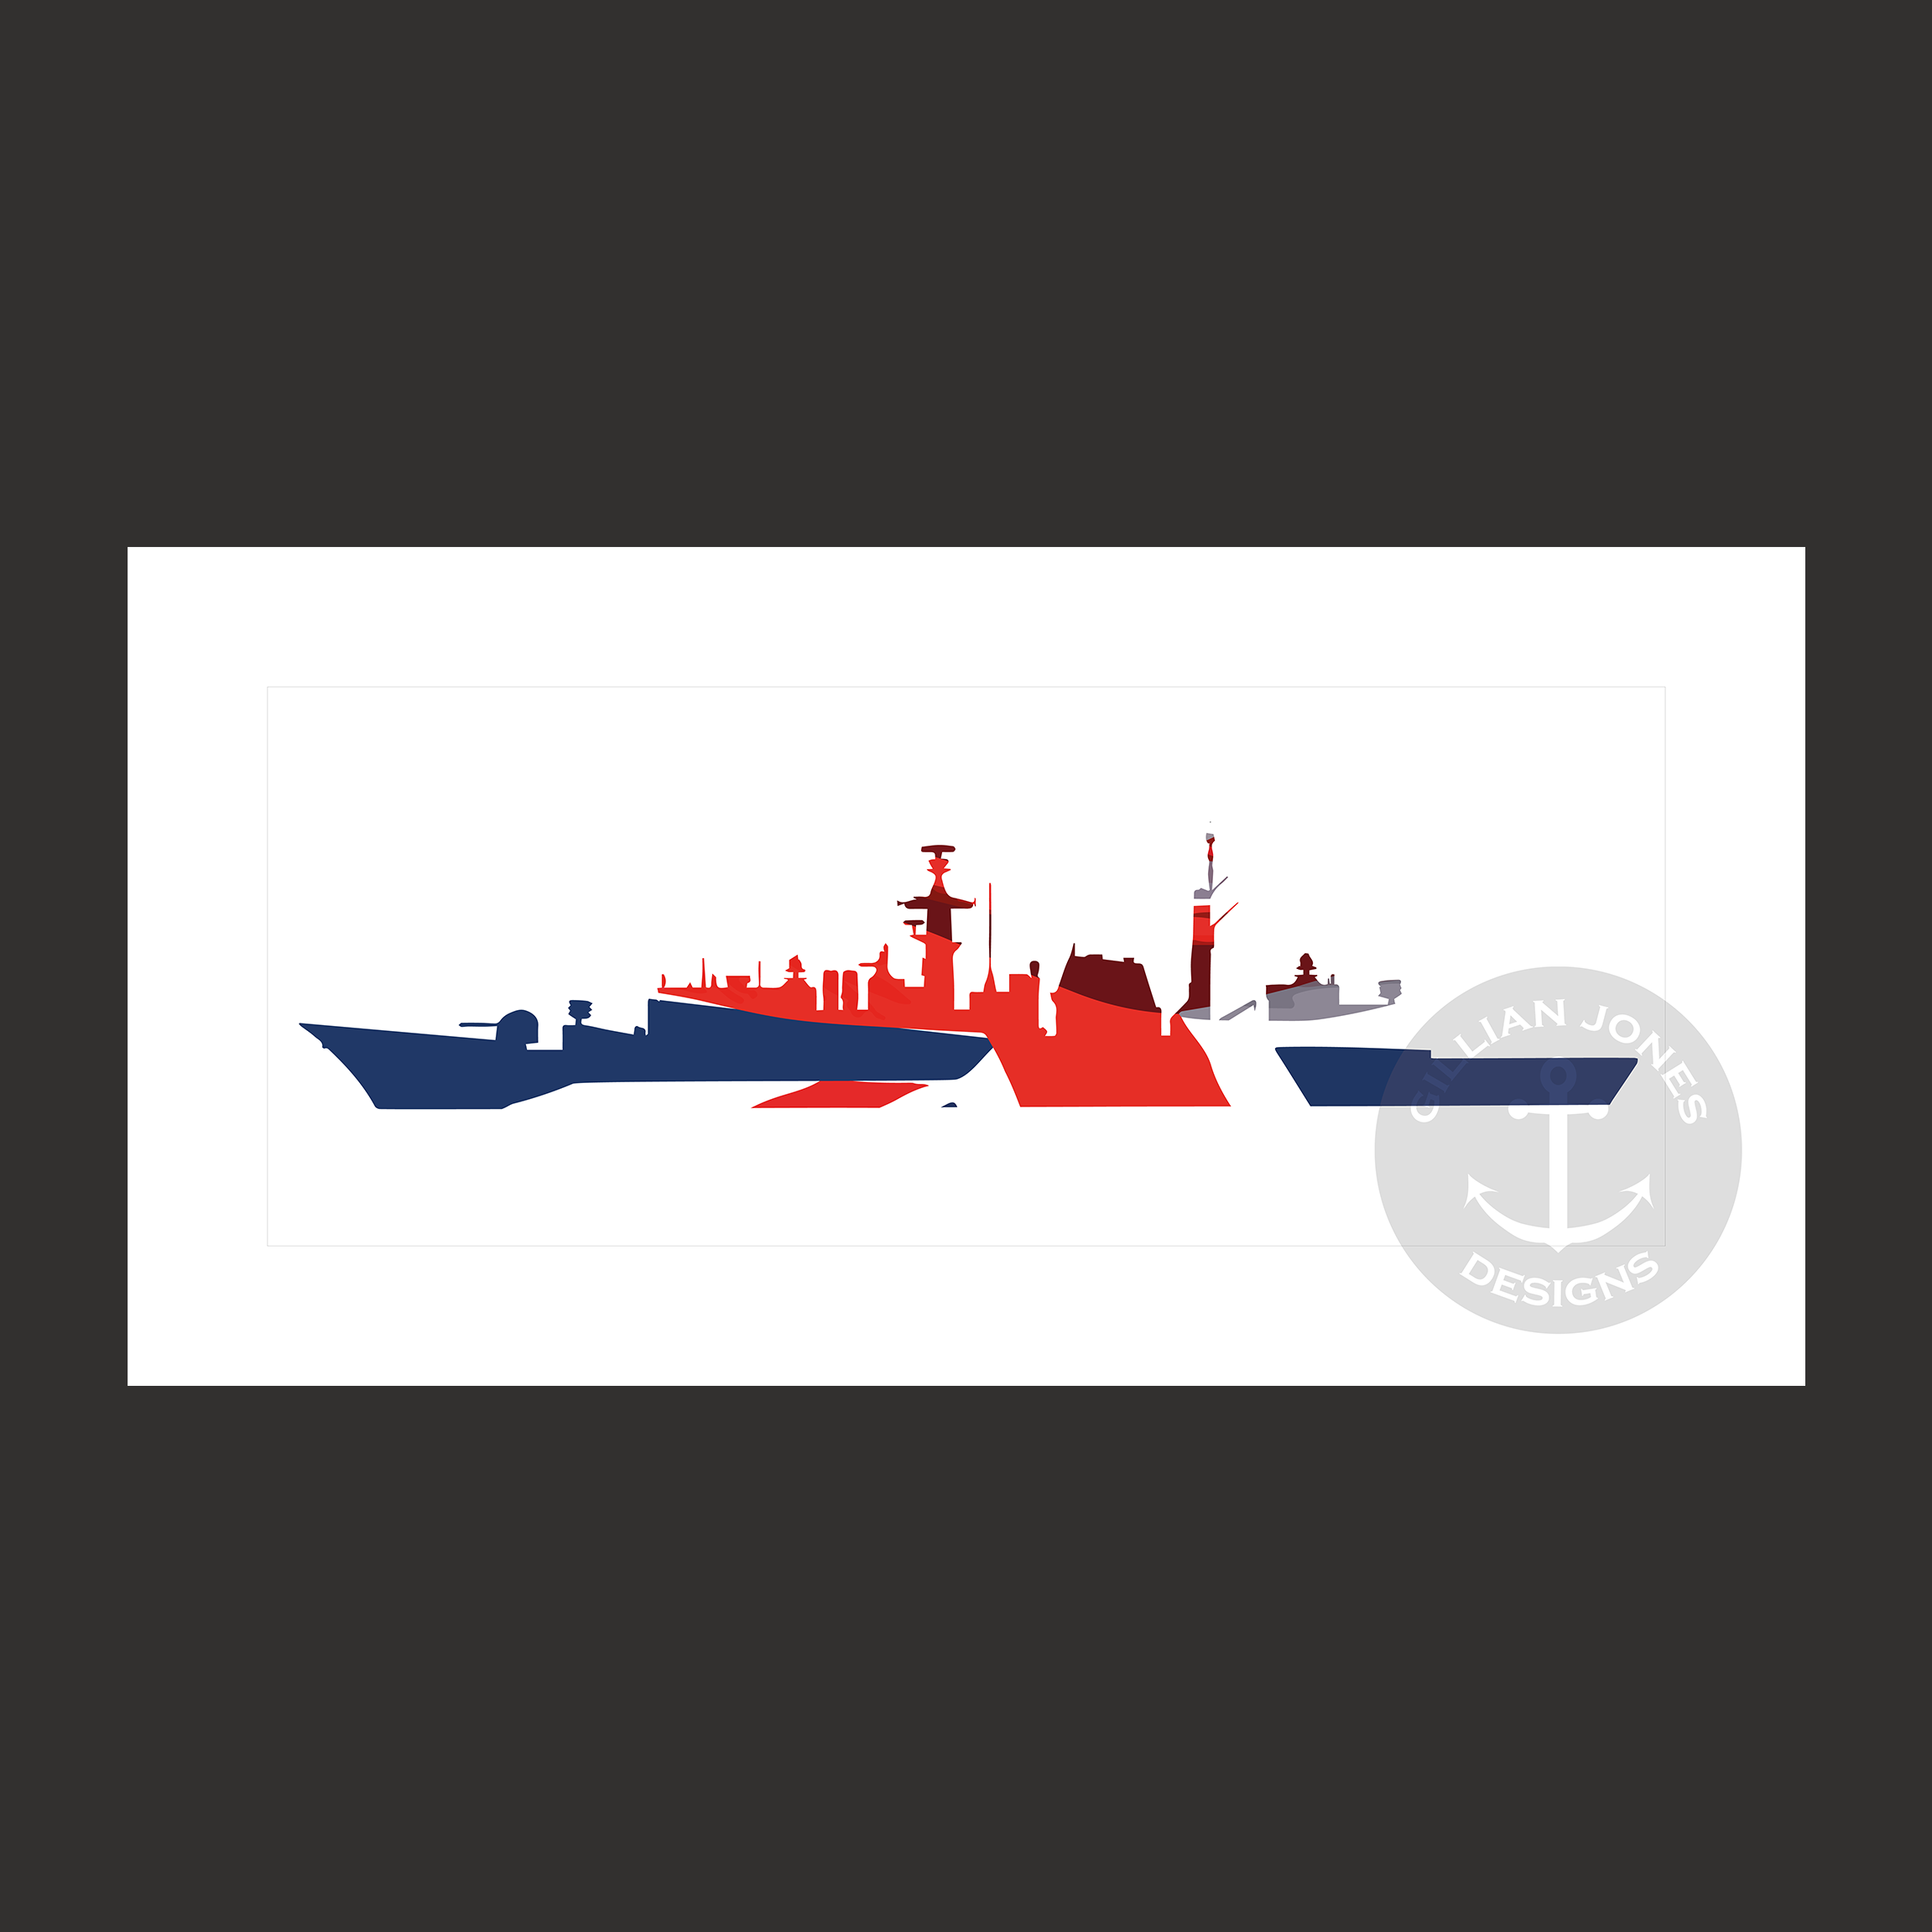 Type 22 Frigate Union Flag Limited Edition Print